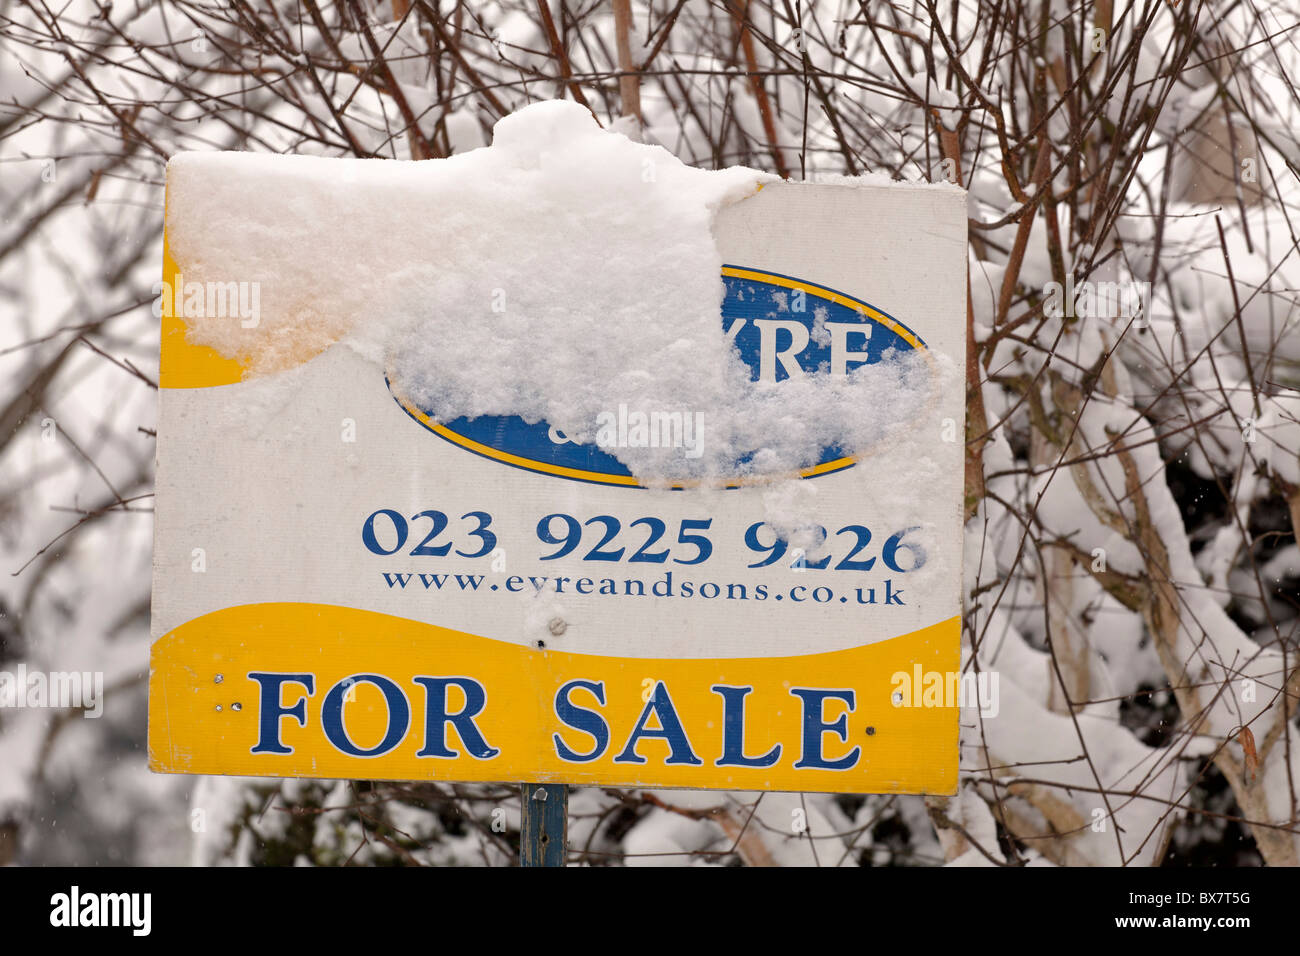 house for sale board partially obscured by snow - Stock Image